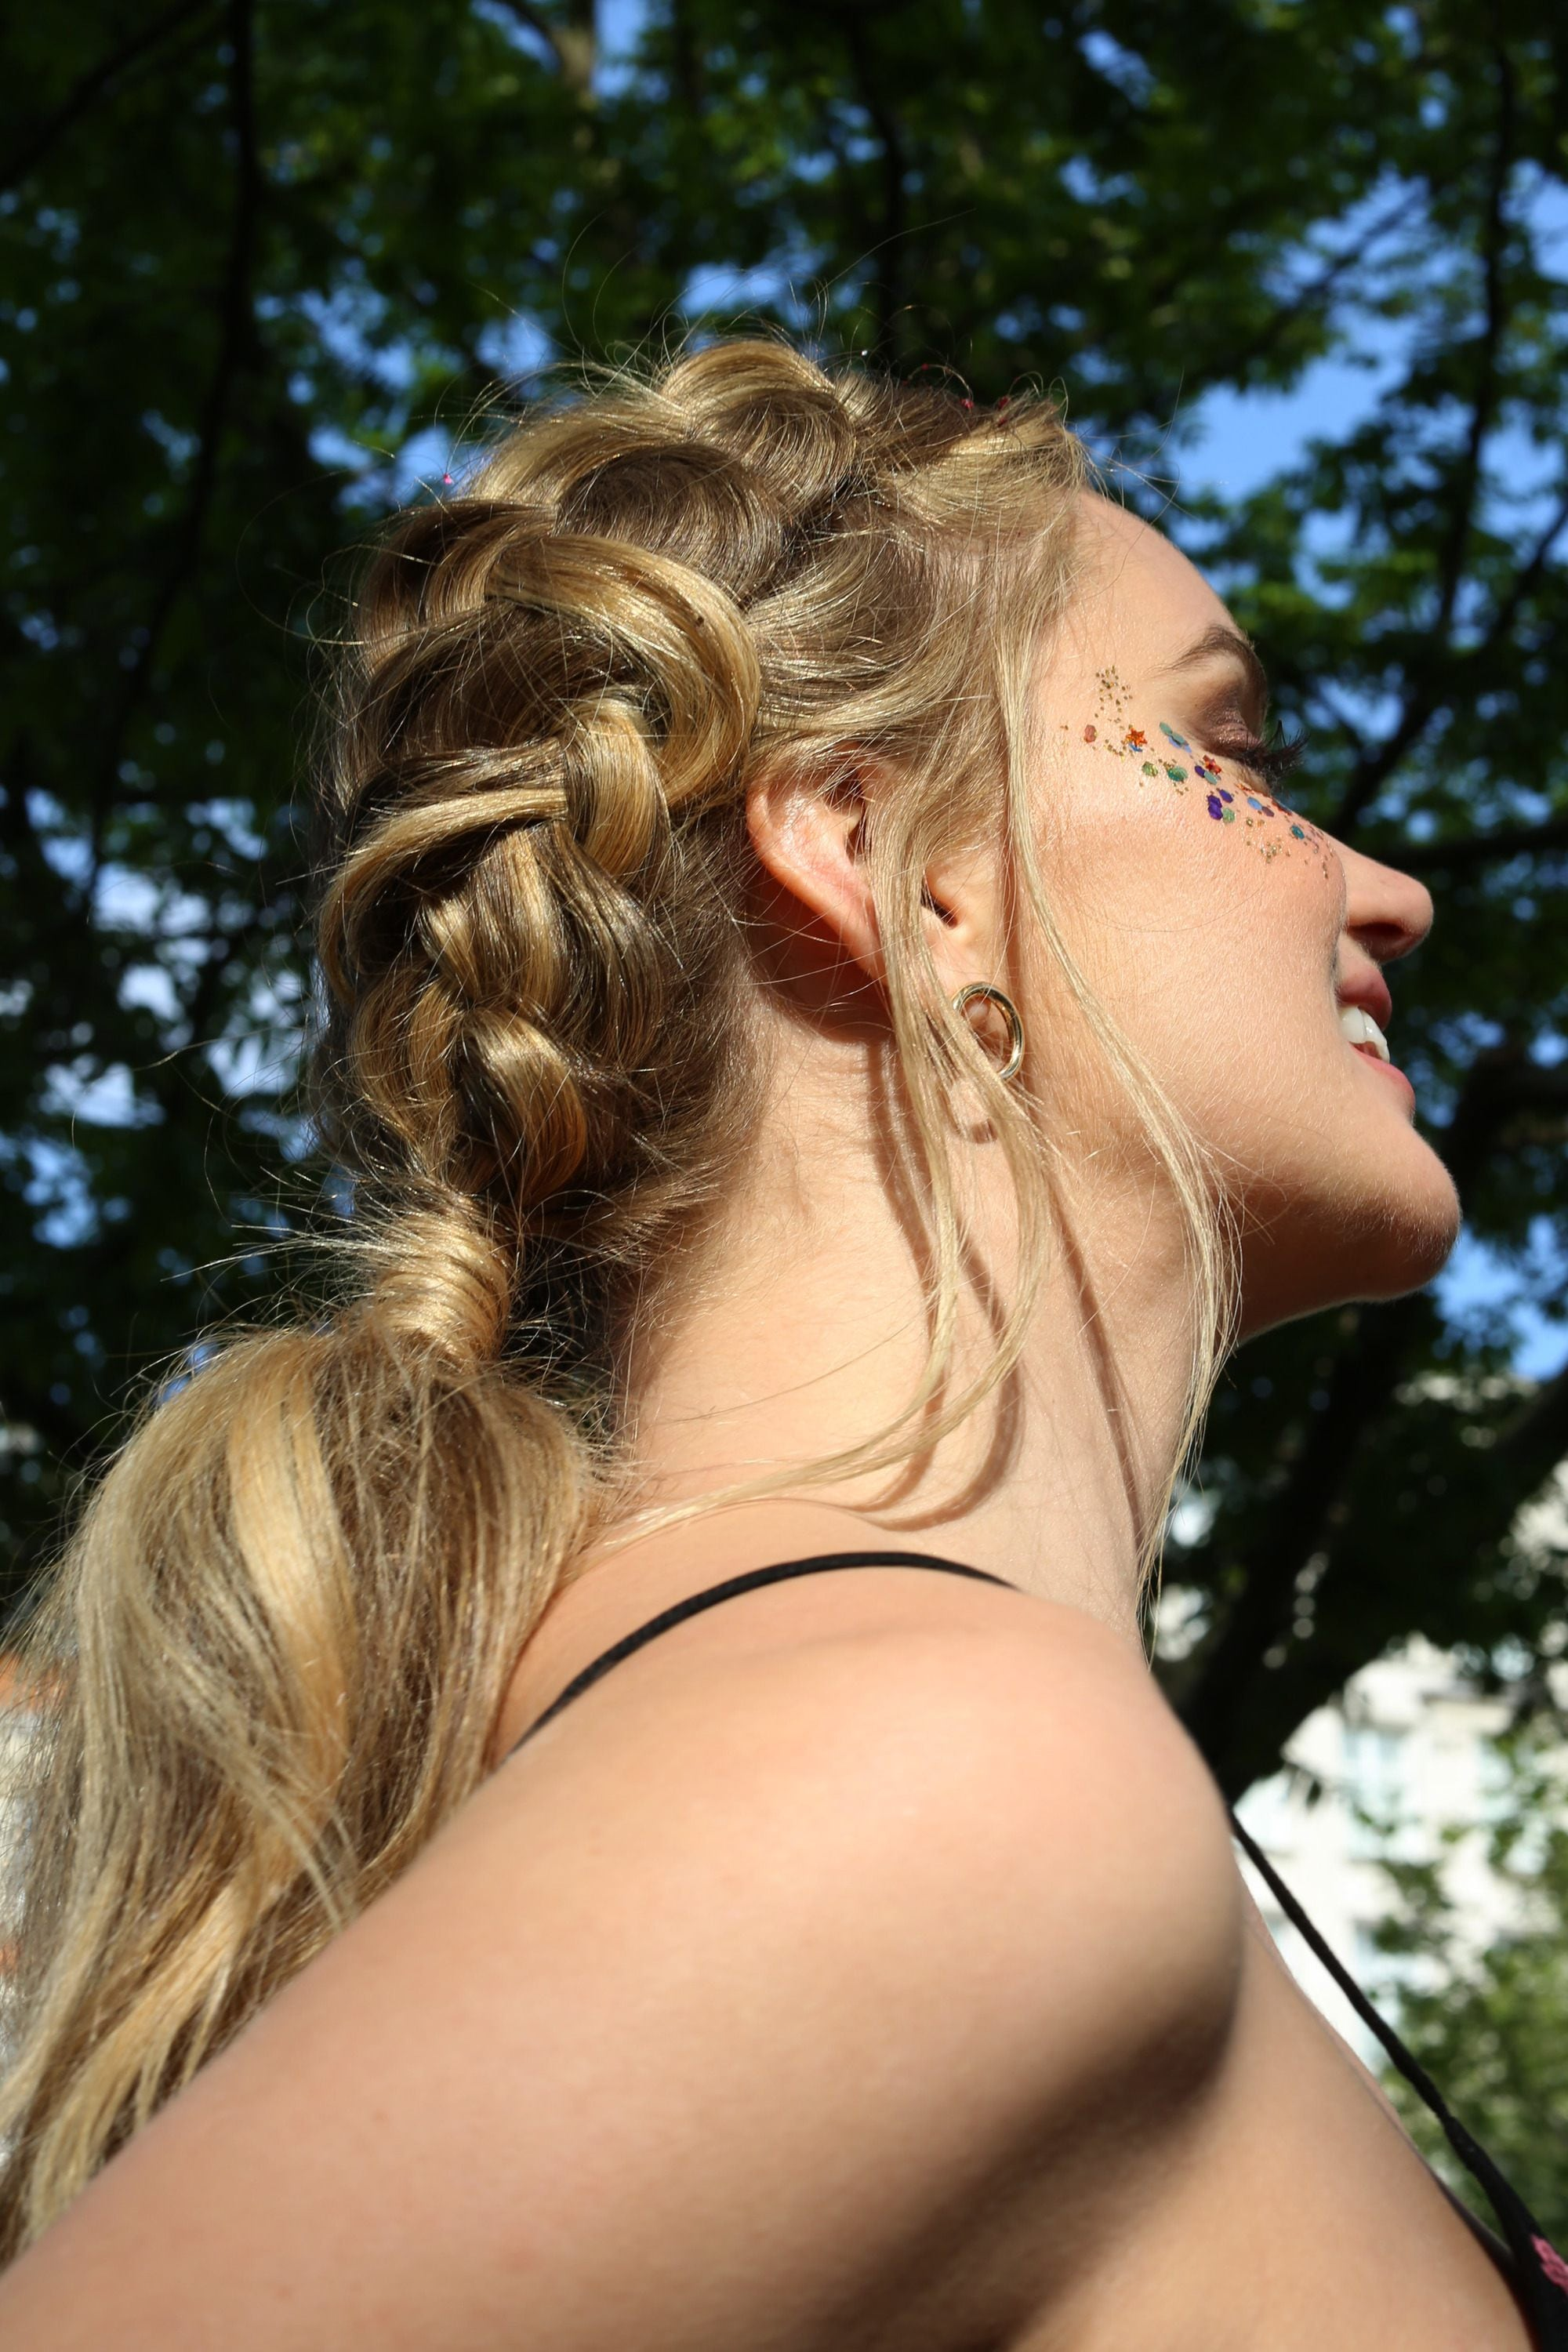 Blonde girl with a Dutch braid ponytail with glitter roots